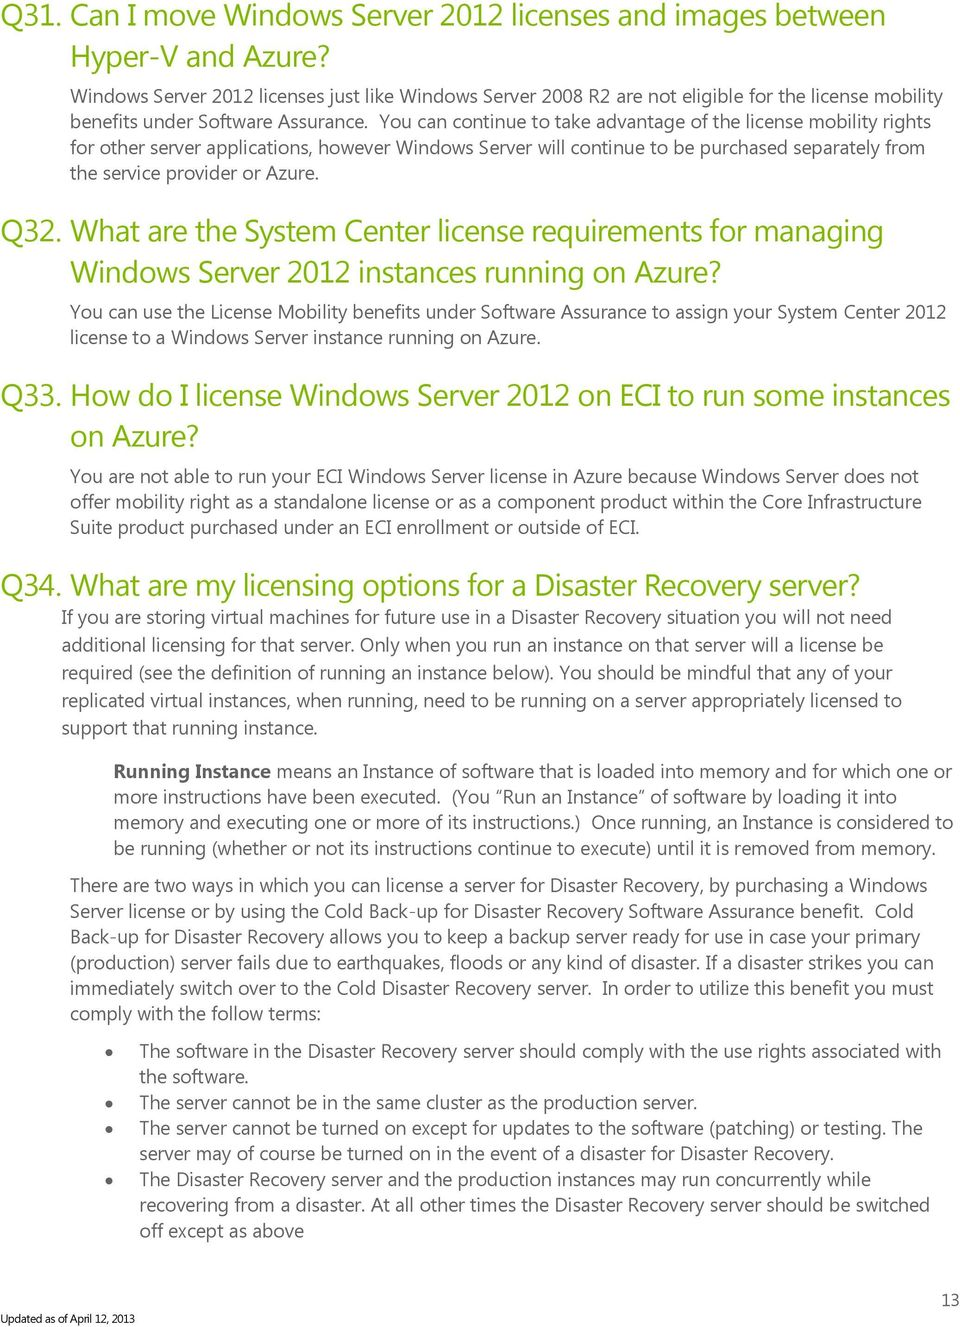 You can continue to take advantage of the license mobility rights for other server applications, however Windows Server will continue to be purchased separately from the service provider or Azure.